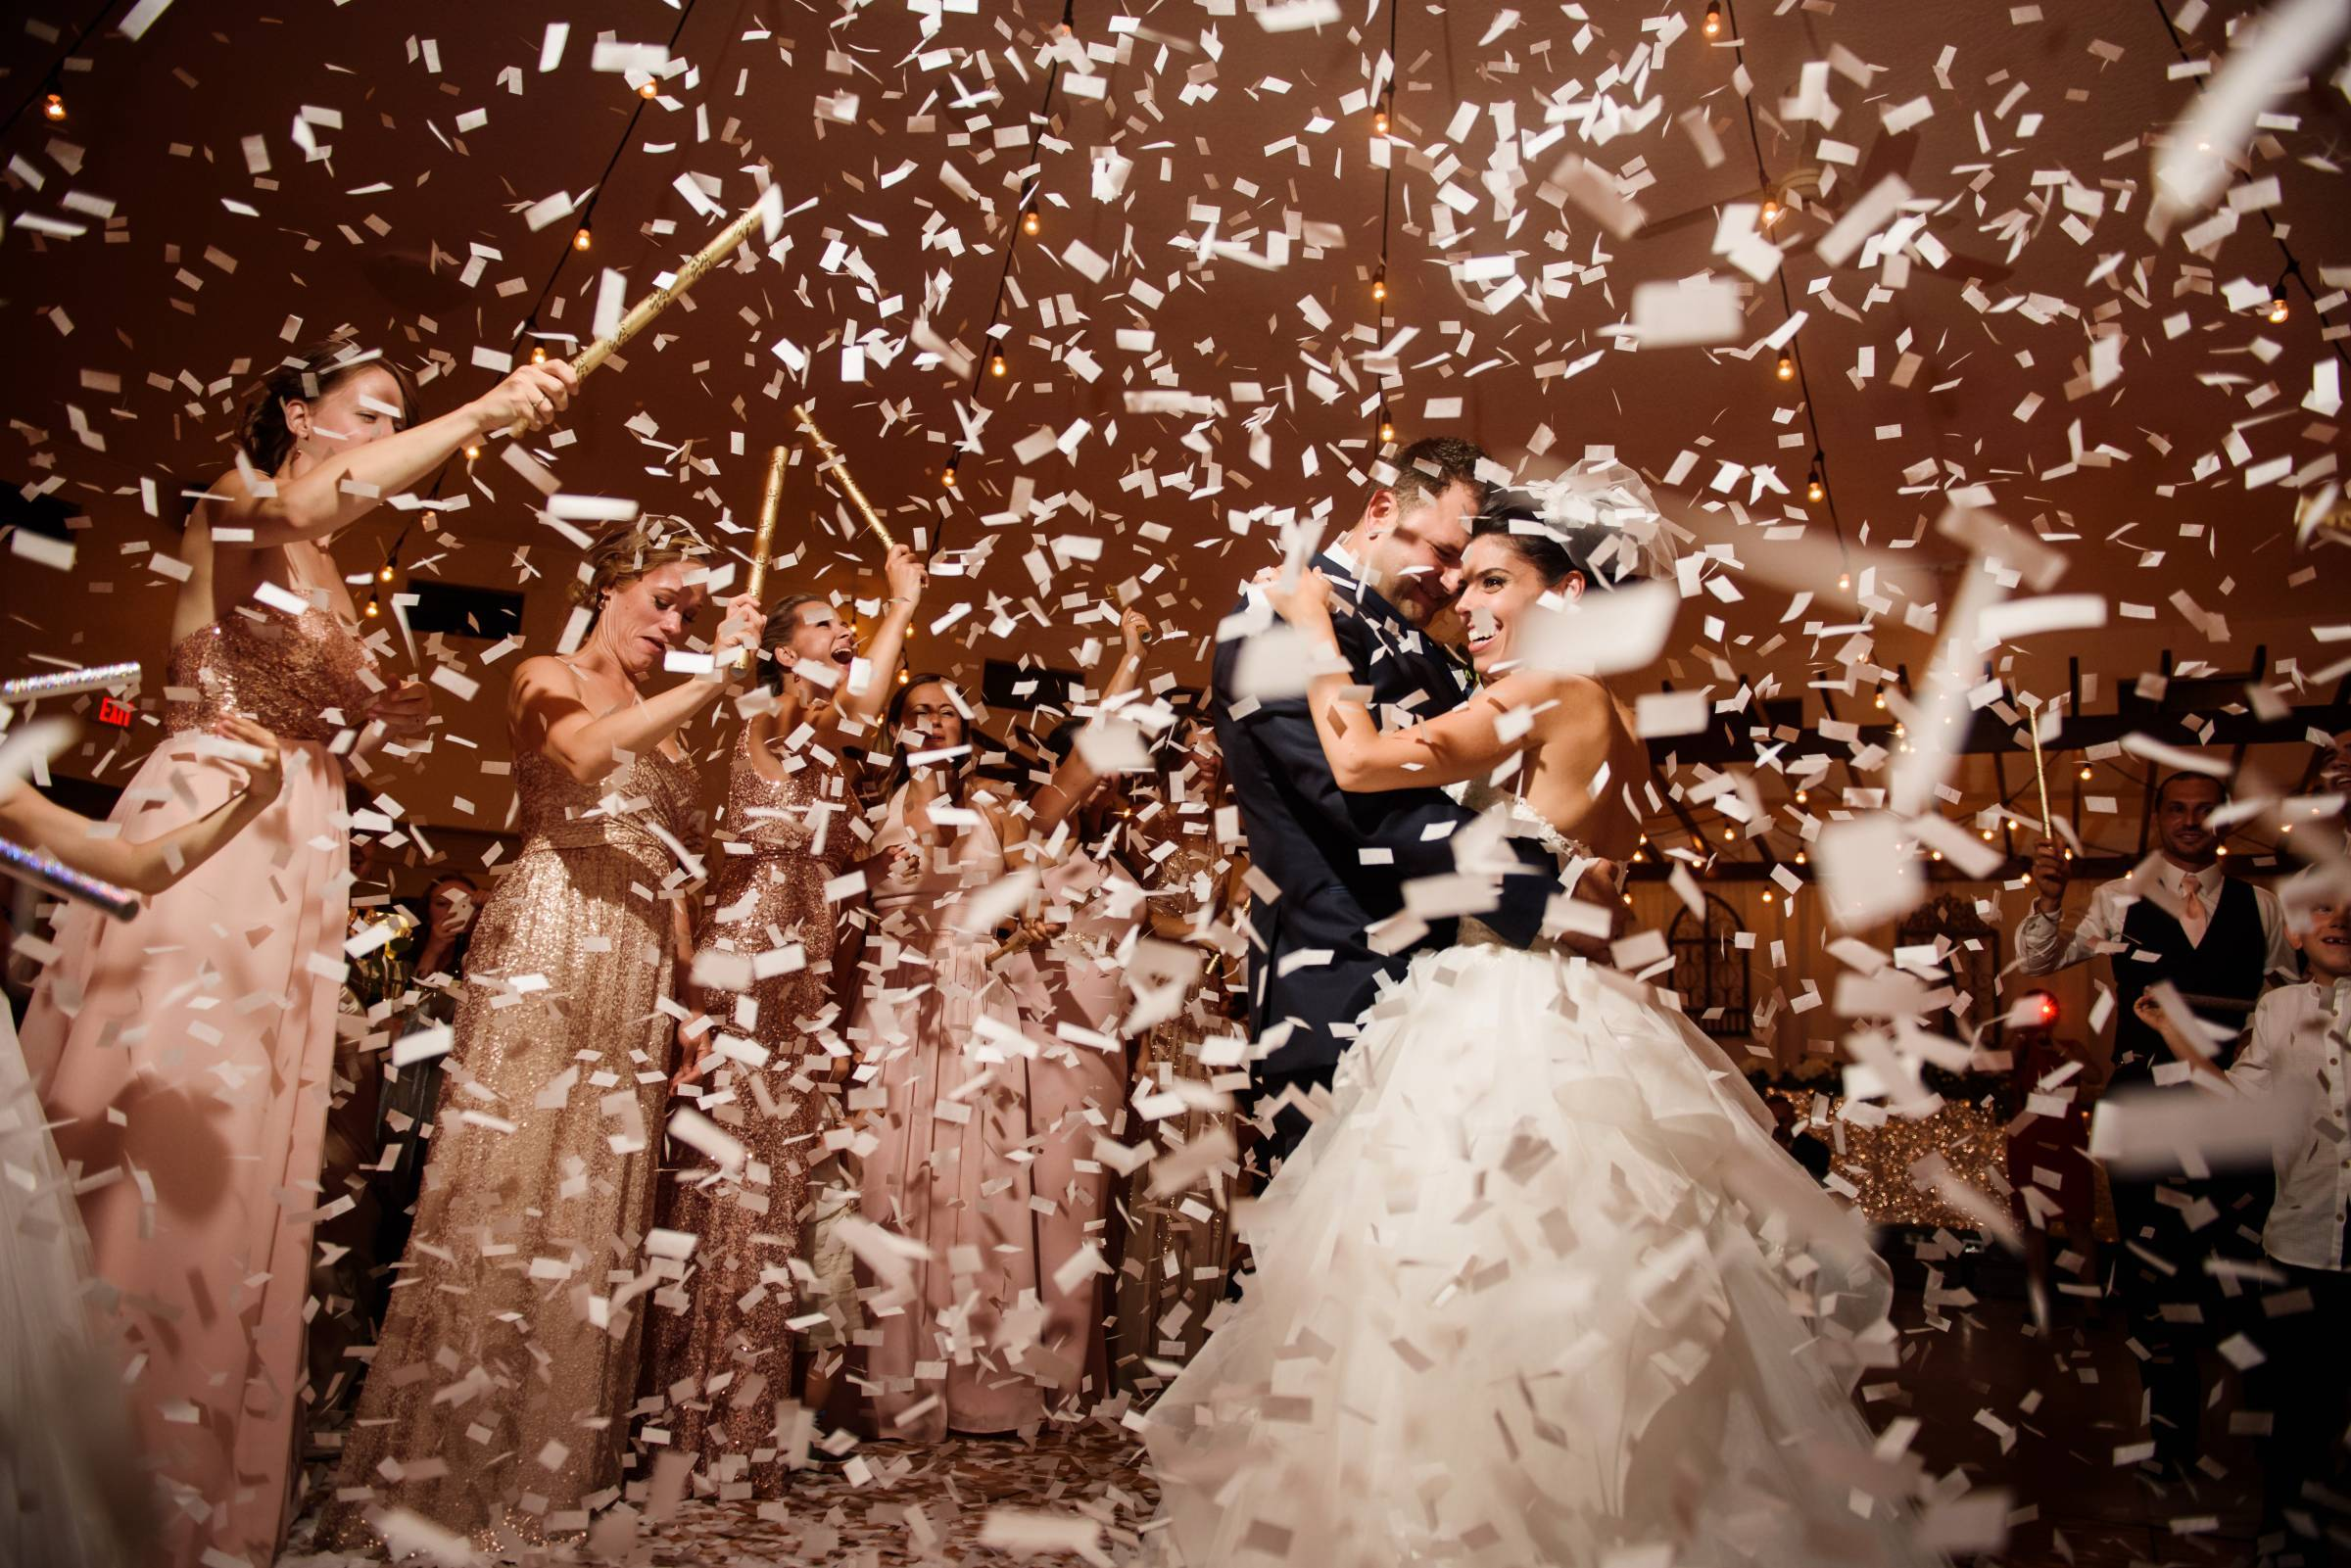 bride and groom dancing under confetti | Emma McCormick - Creative Planning + Production